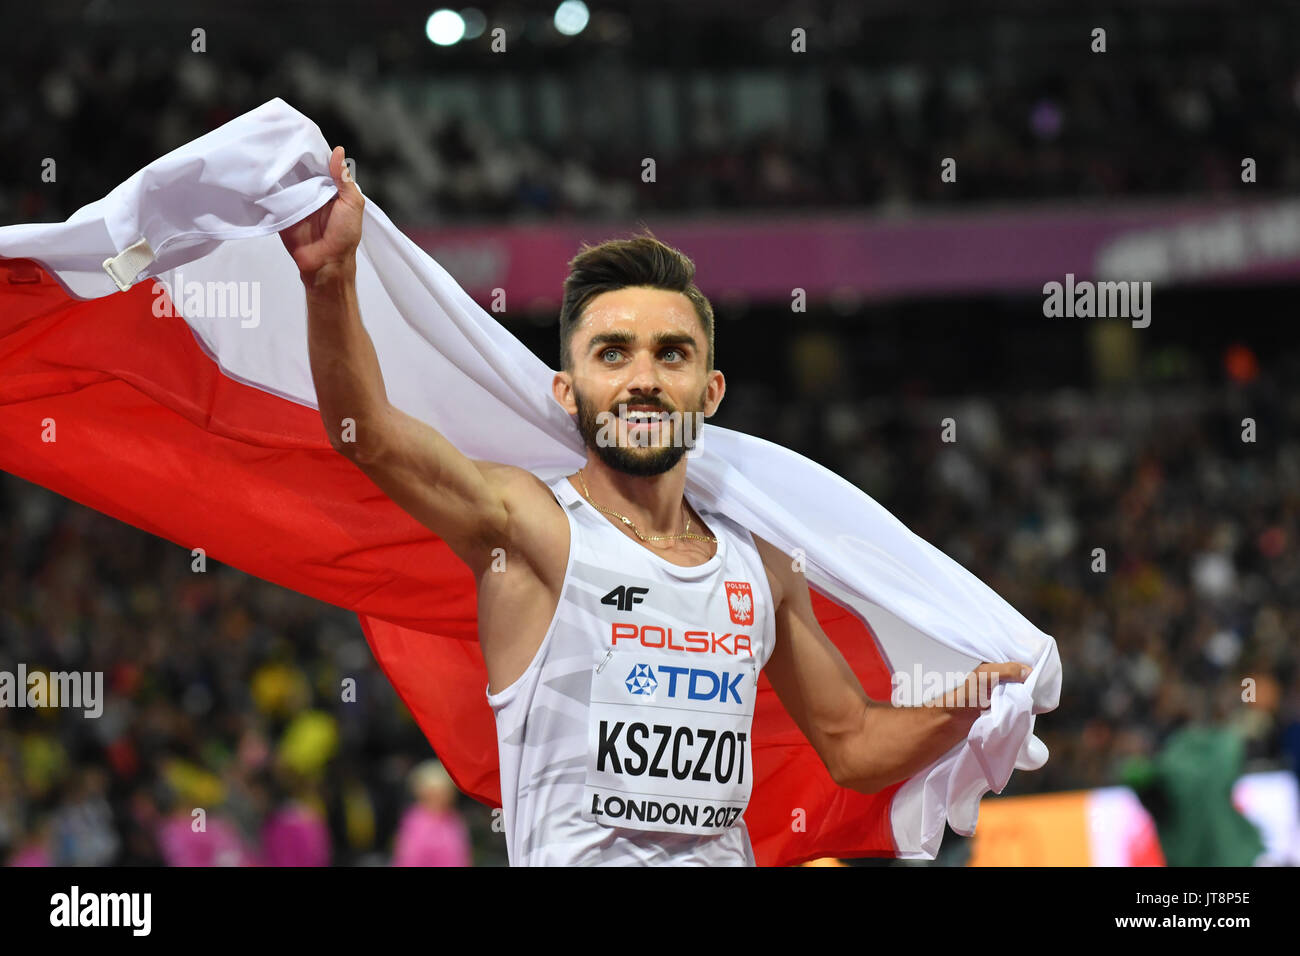 London, UK. 8th Aug, 2017. IAAF World Championships. Day 5. 800 Metres, Men. Final.Adam Kszczot (POL) Credit: Matthew Chattle/Alamy Live News - Stock Image